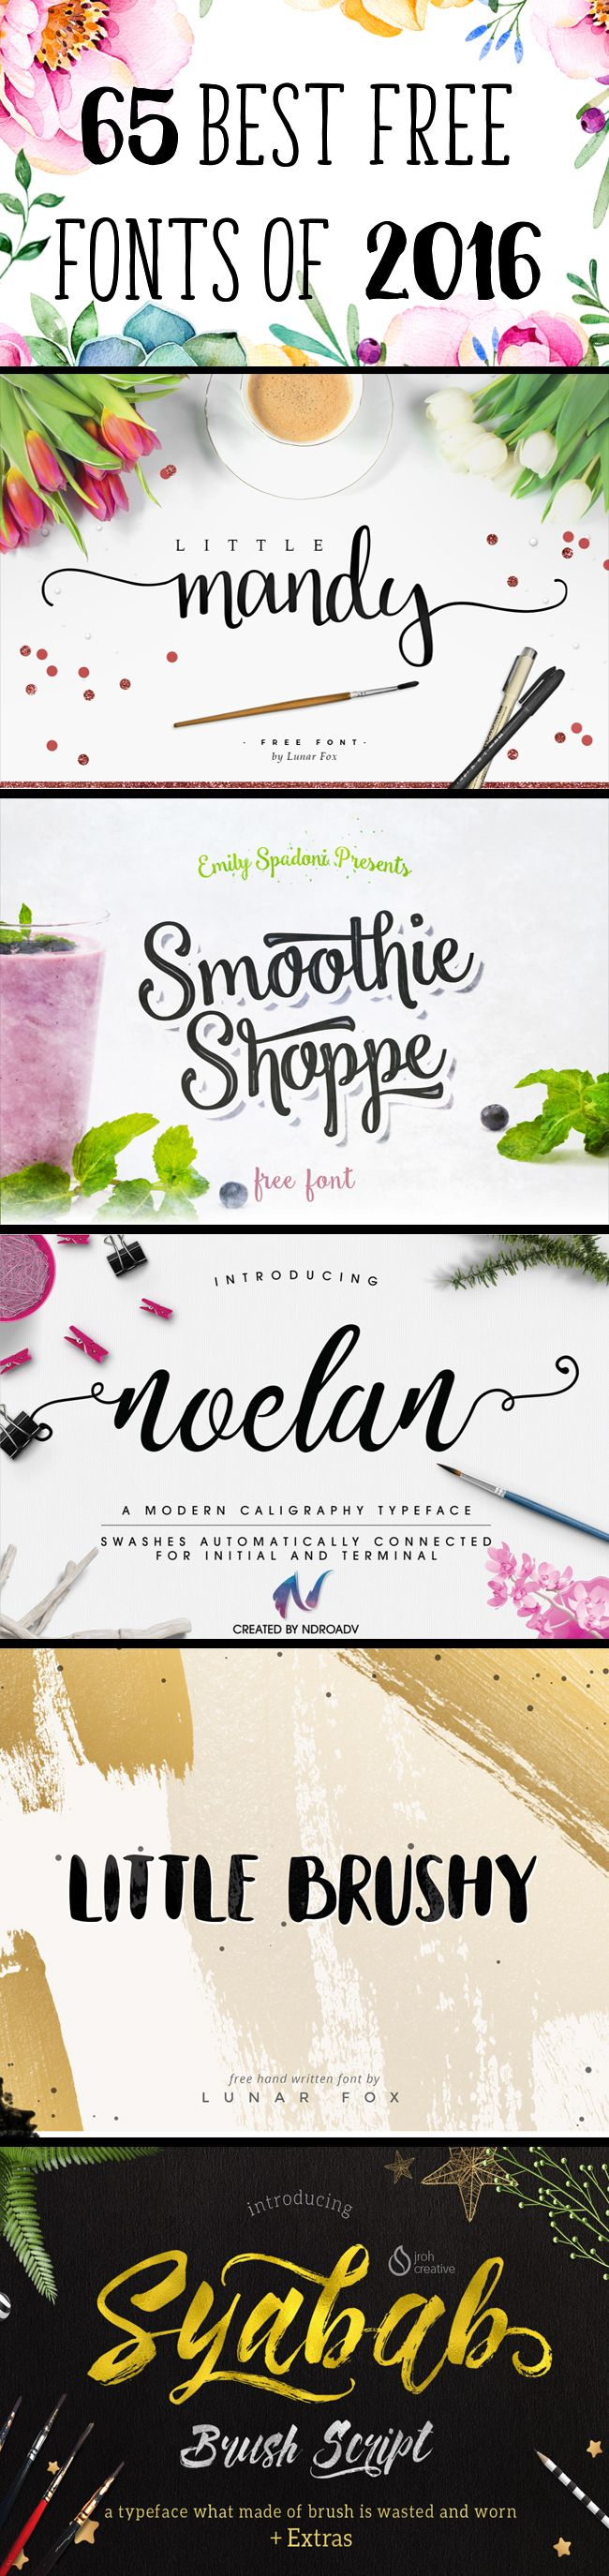 cursive fonts for wedding cards%0A The most amazing script fonts   and they are all FREE      font fun    Pinterest   Fonts  Cricut and Free